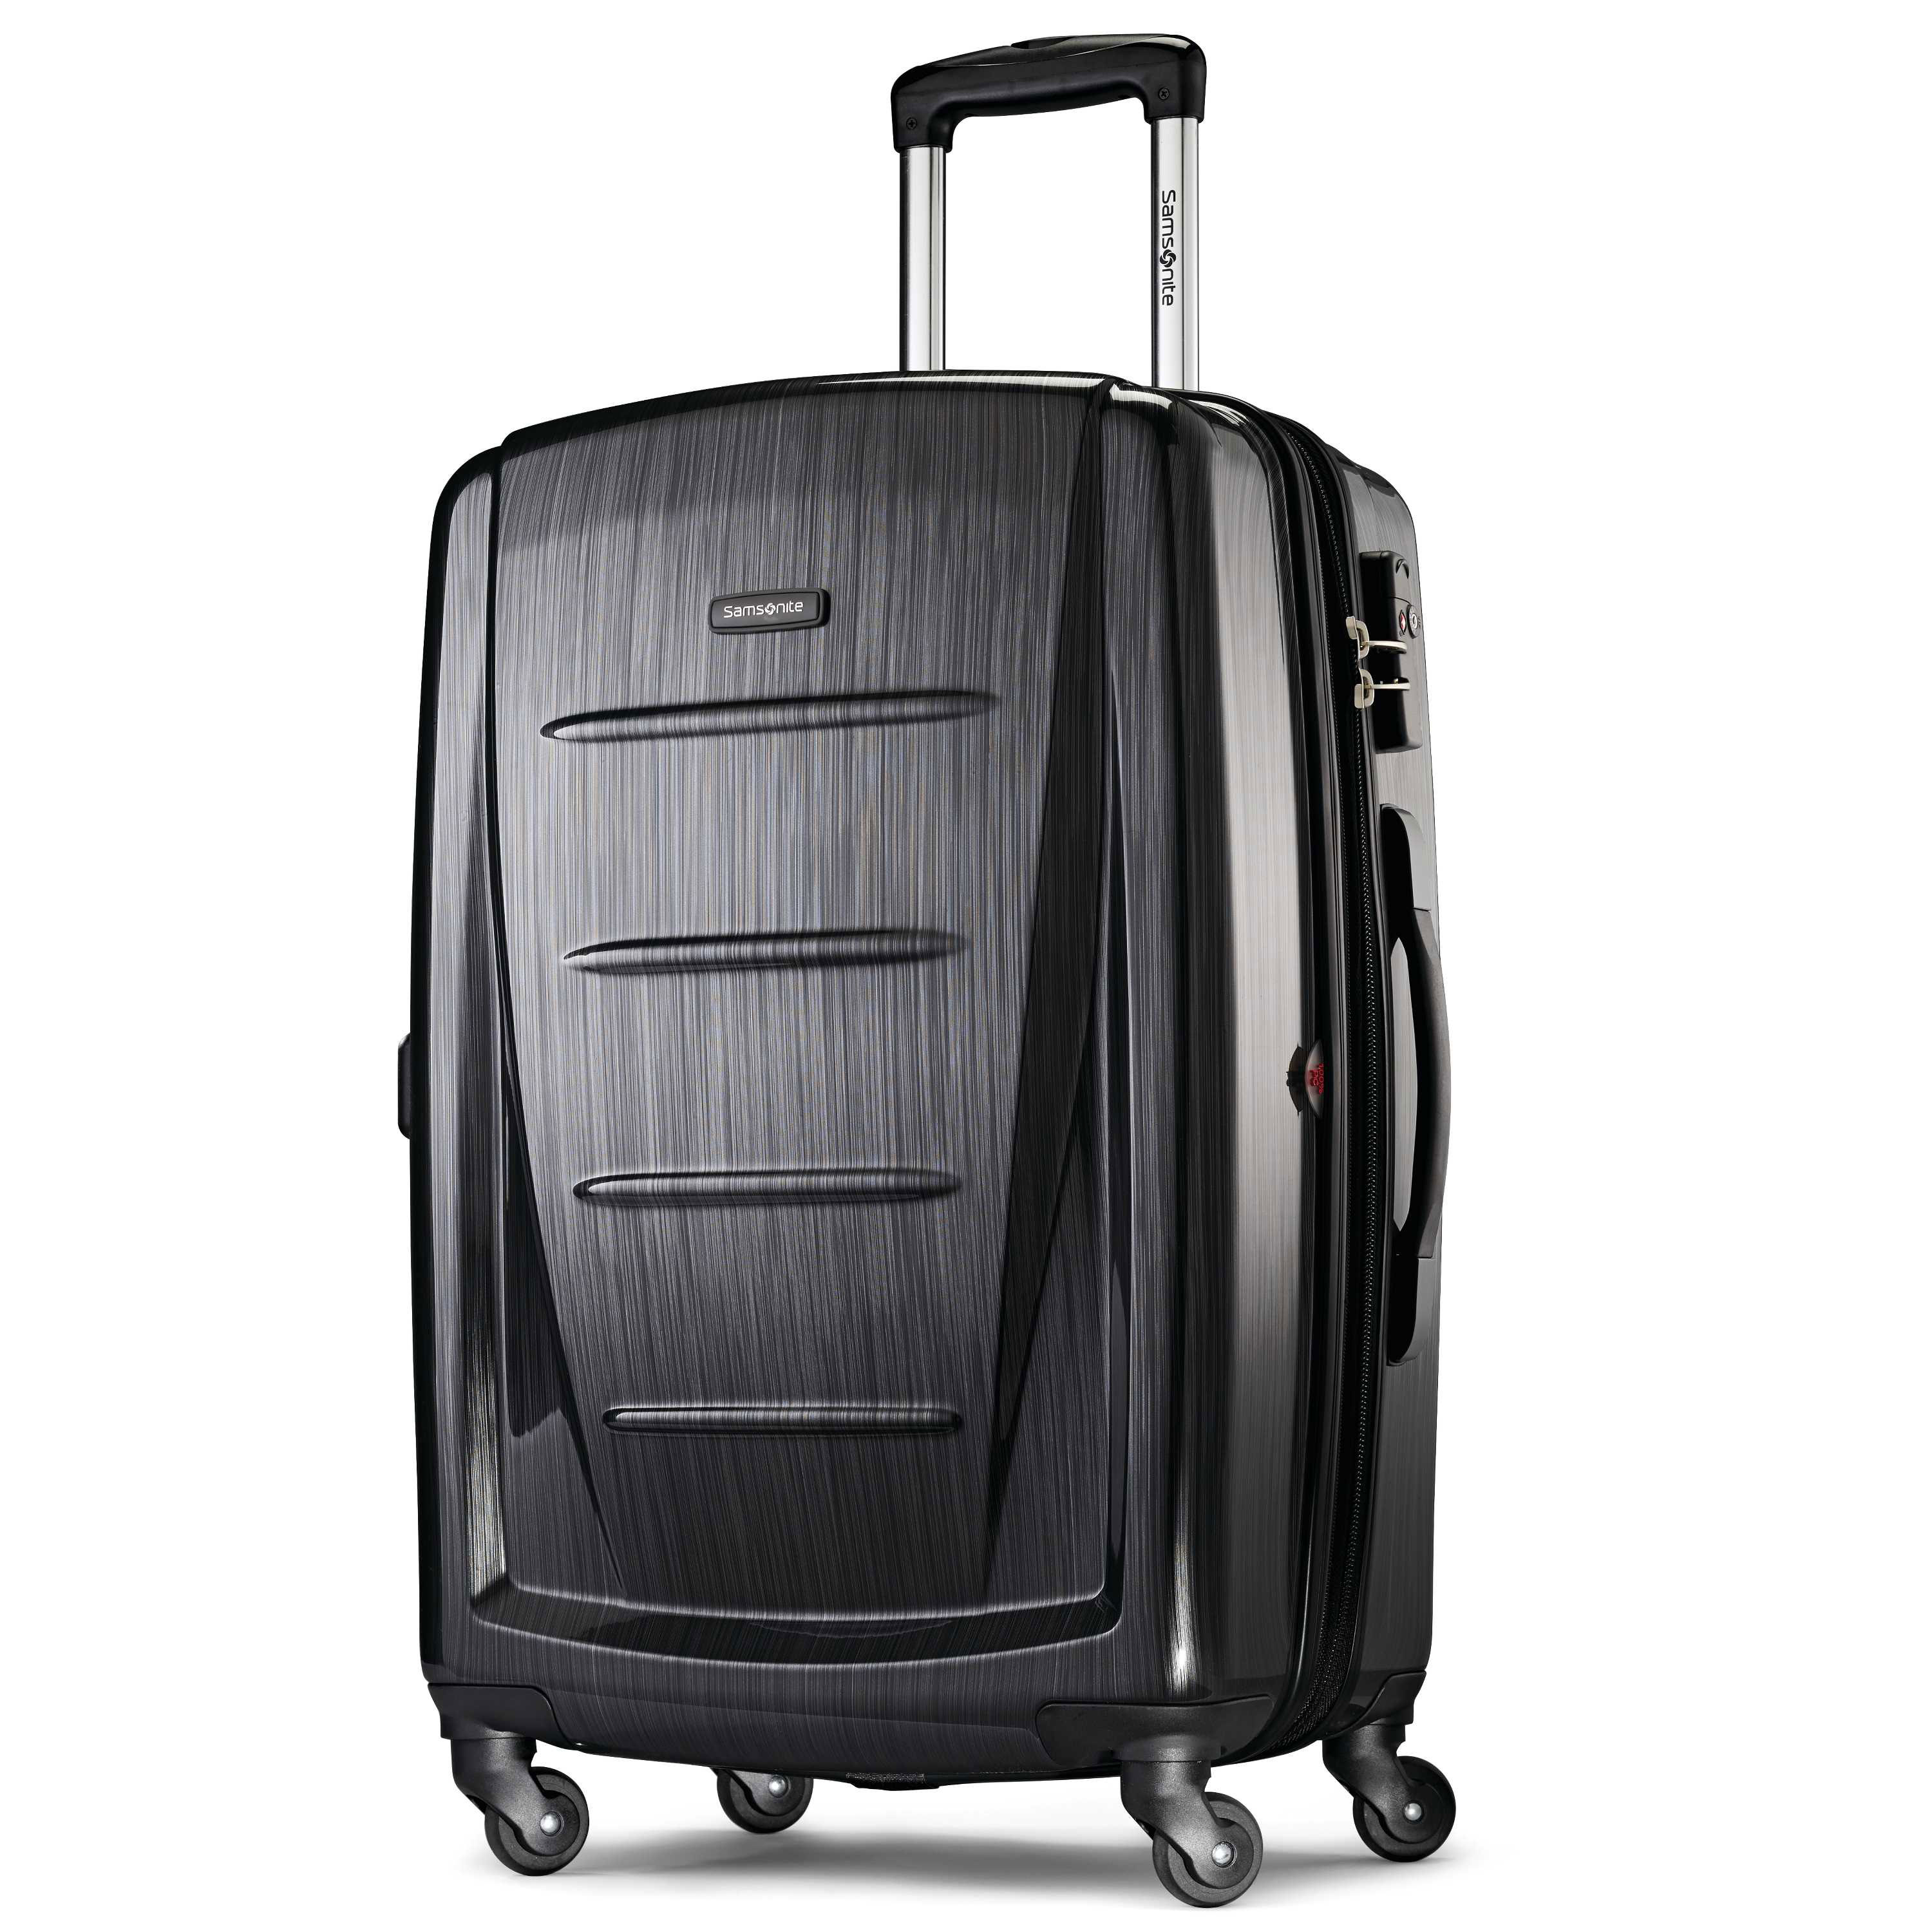 Samsonite-Winfield-2-Fashion-Spinner-Luggage thumbnail 55